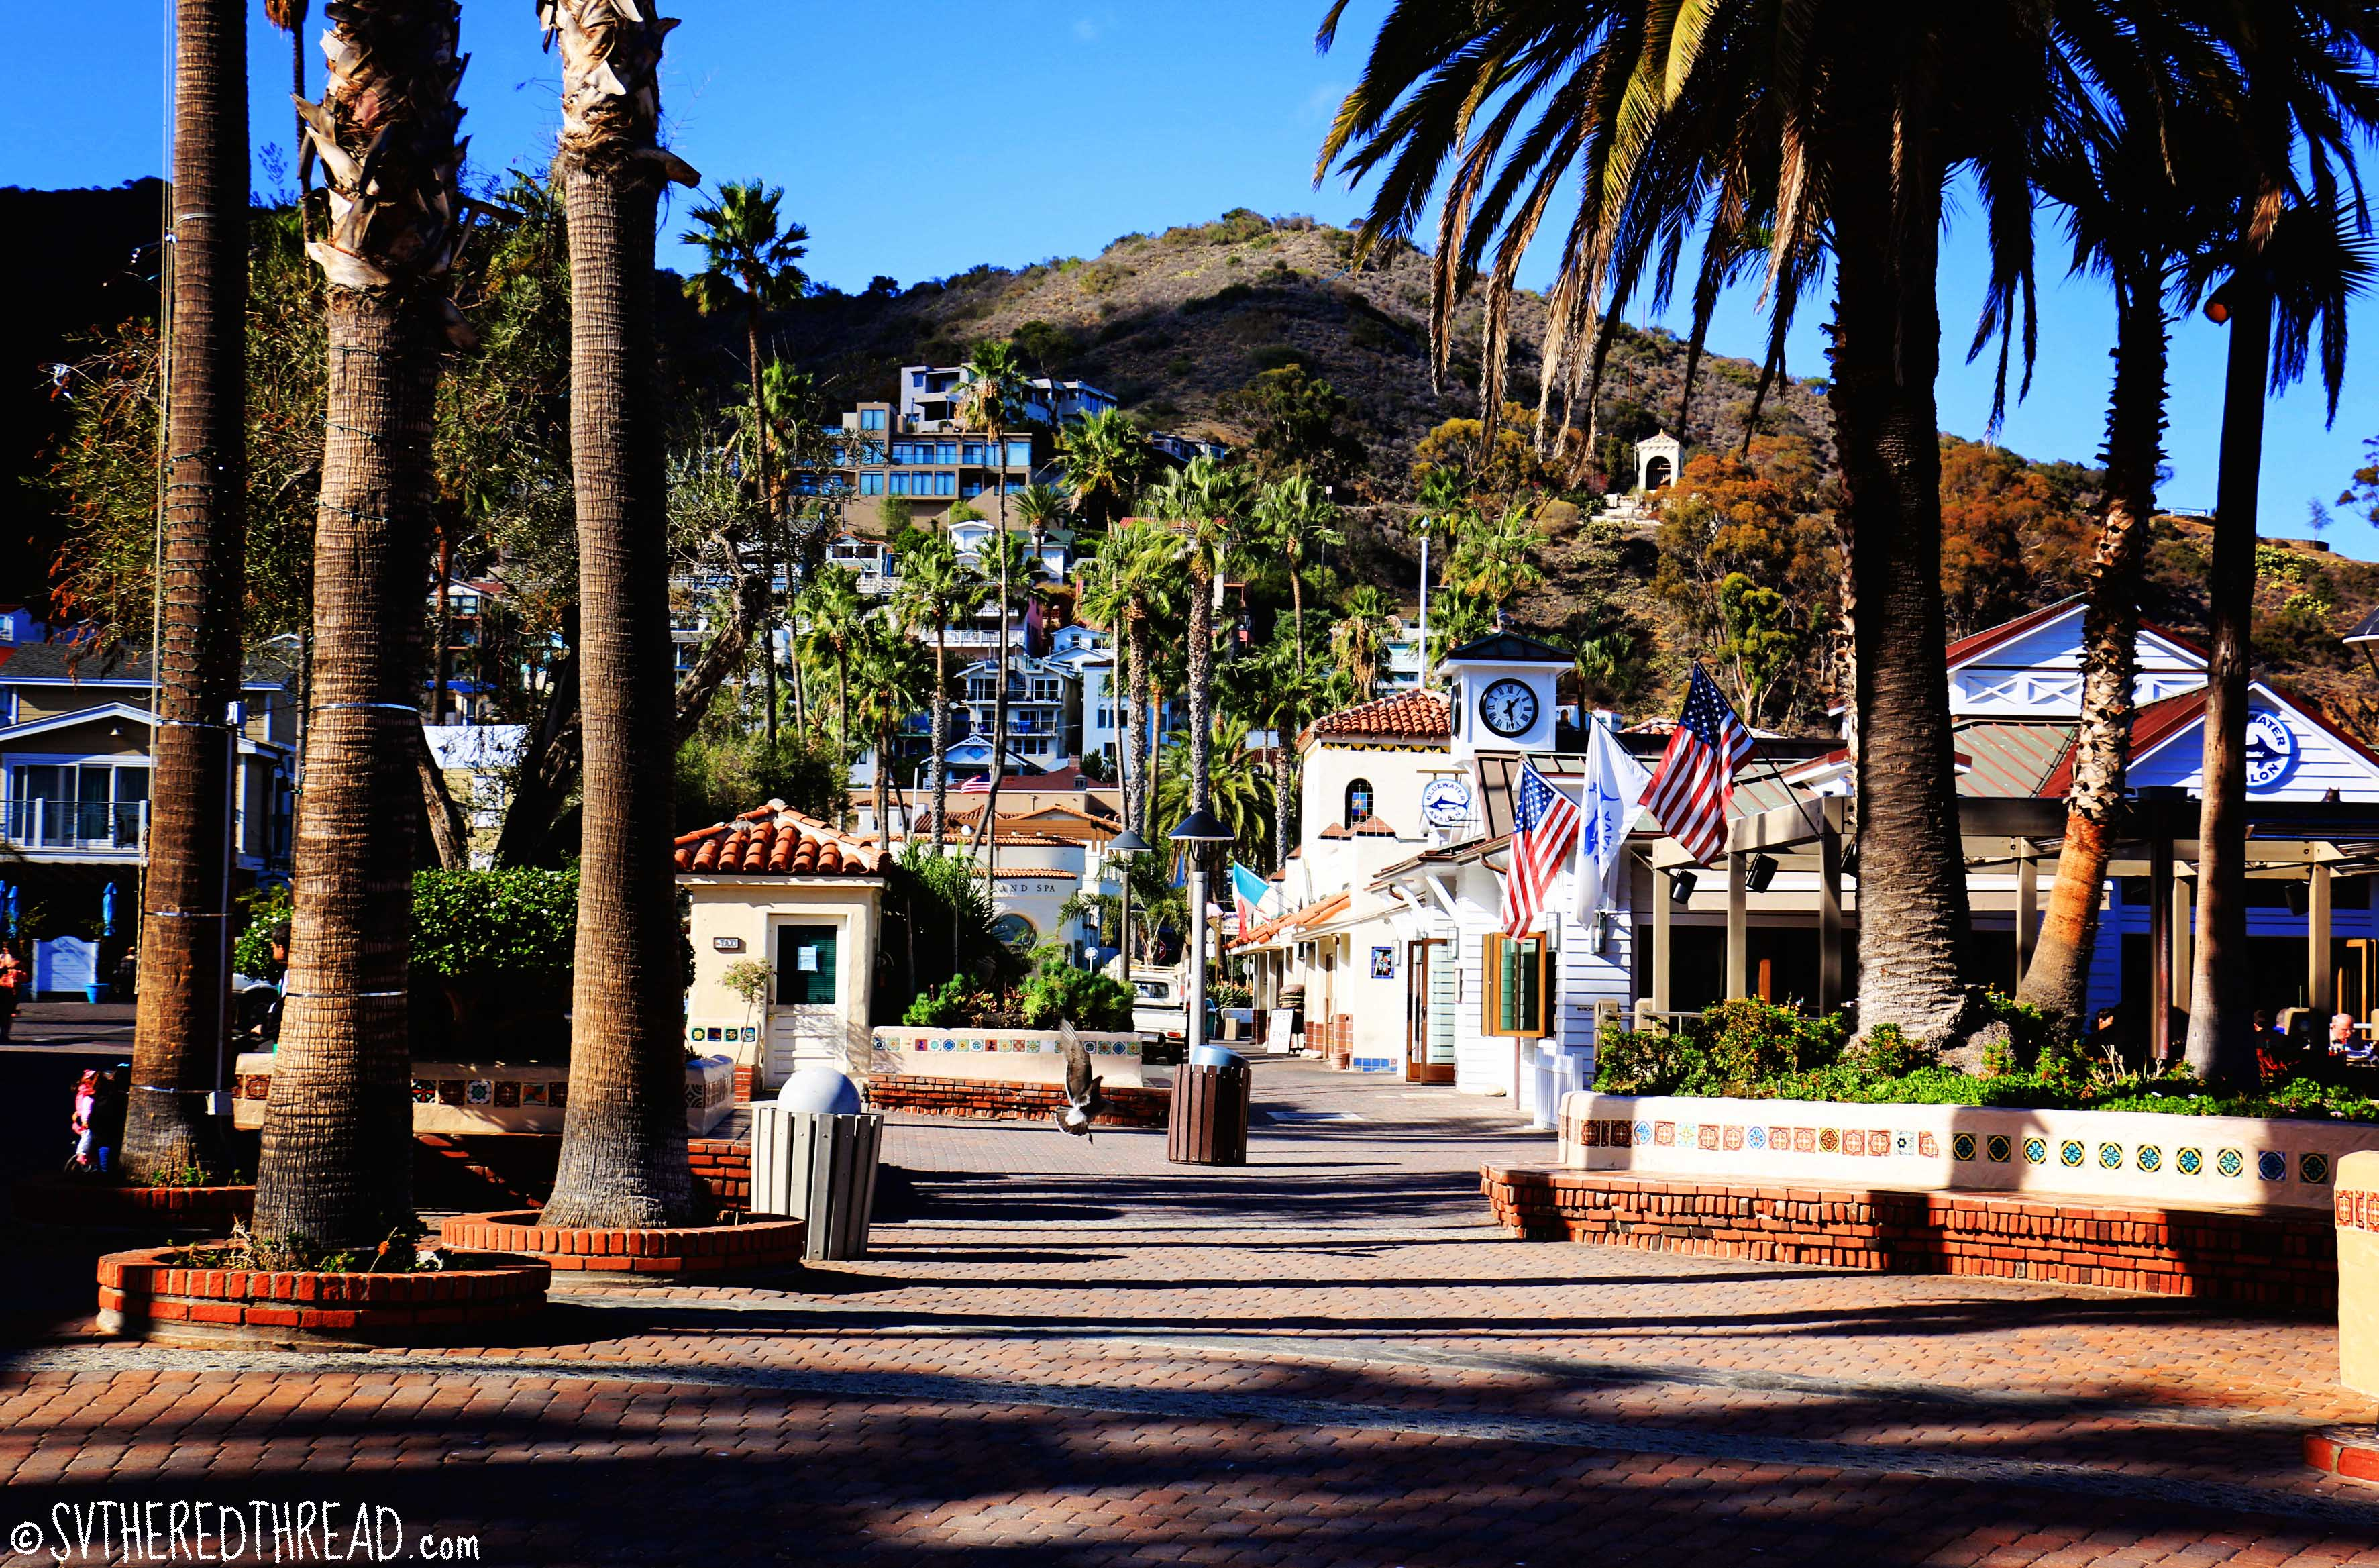 Regal Avalon 12 >> From remote to ritzy: Two Harbors and Avalon, Santa Catalina Island | s/v The Red Thread